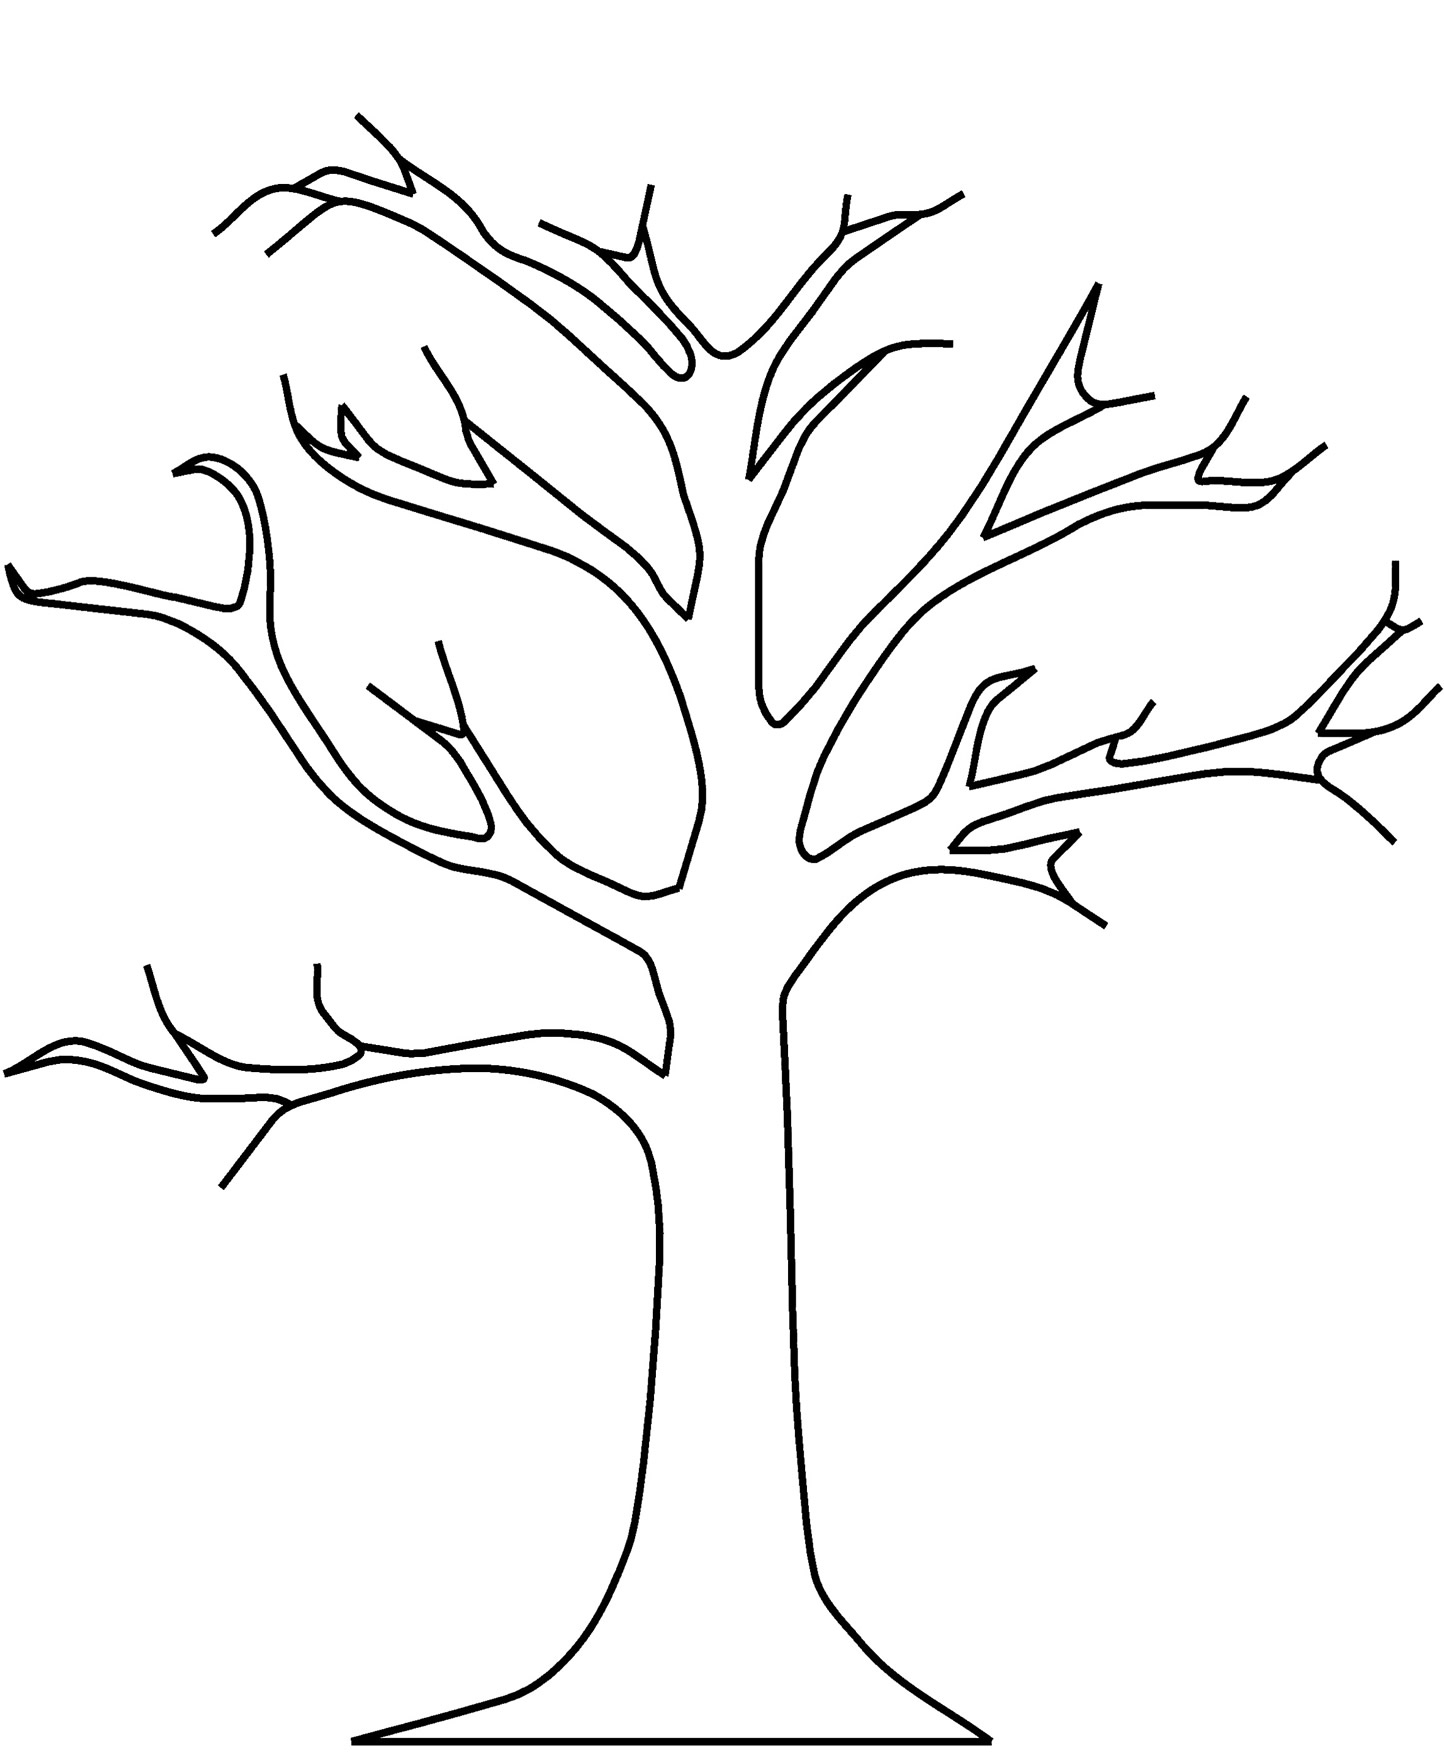 willow tree coloring page willow coloring pages at getcoloringscom free printable page willow coloring tree